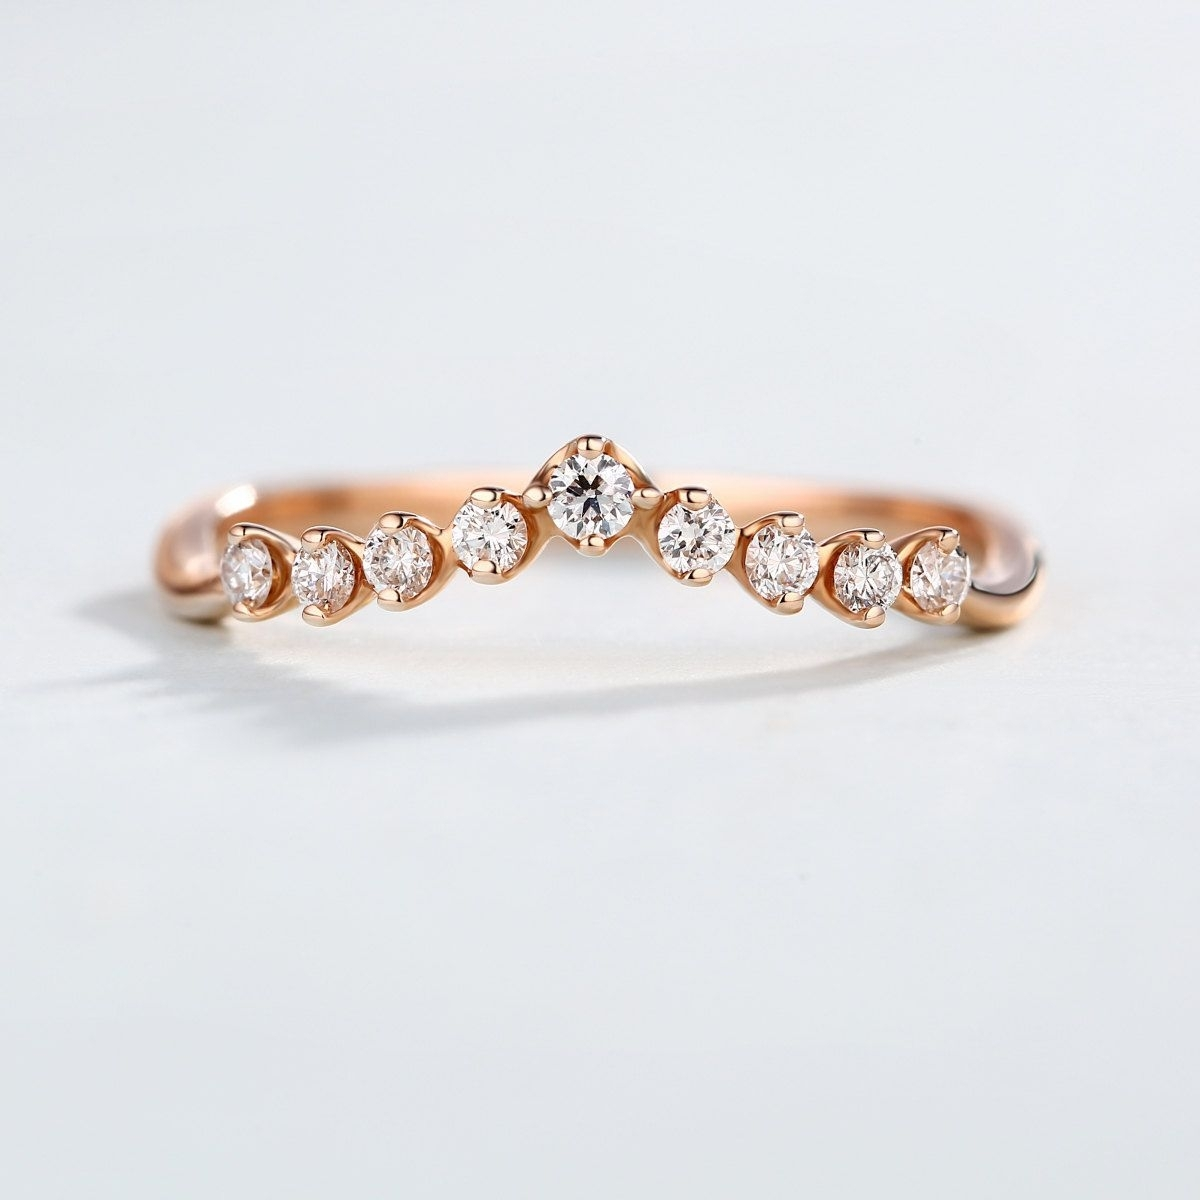 Curved Diamond Ring, Wedding Band 14K Rose Gold Ring Chevron Ring Intended For 2018 Chevron Band Rings (View 7 of 15)